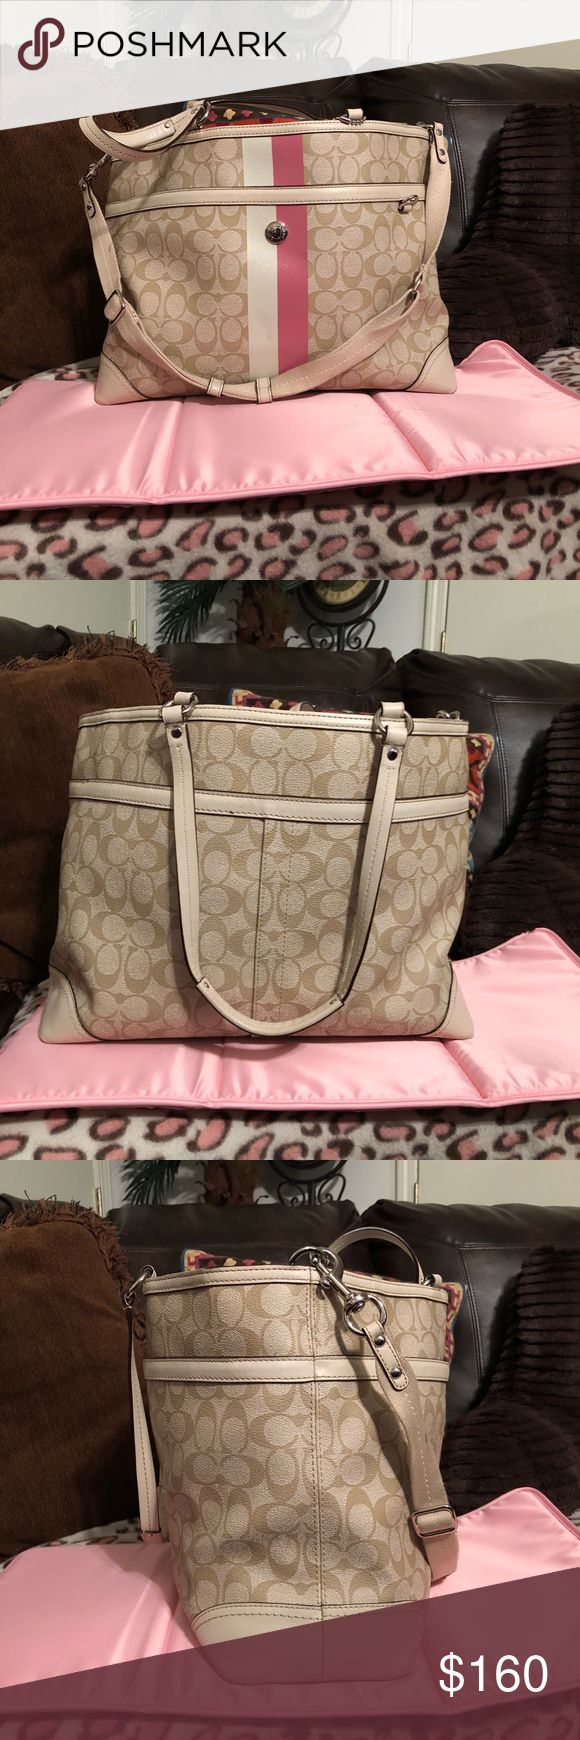 Coach Diaper Bag Coach Diaper Bag-excellent condition, leather, one small stain on inside shown in last picture. Includes changing mat. Coach Bags Baby Bags